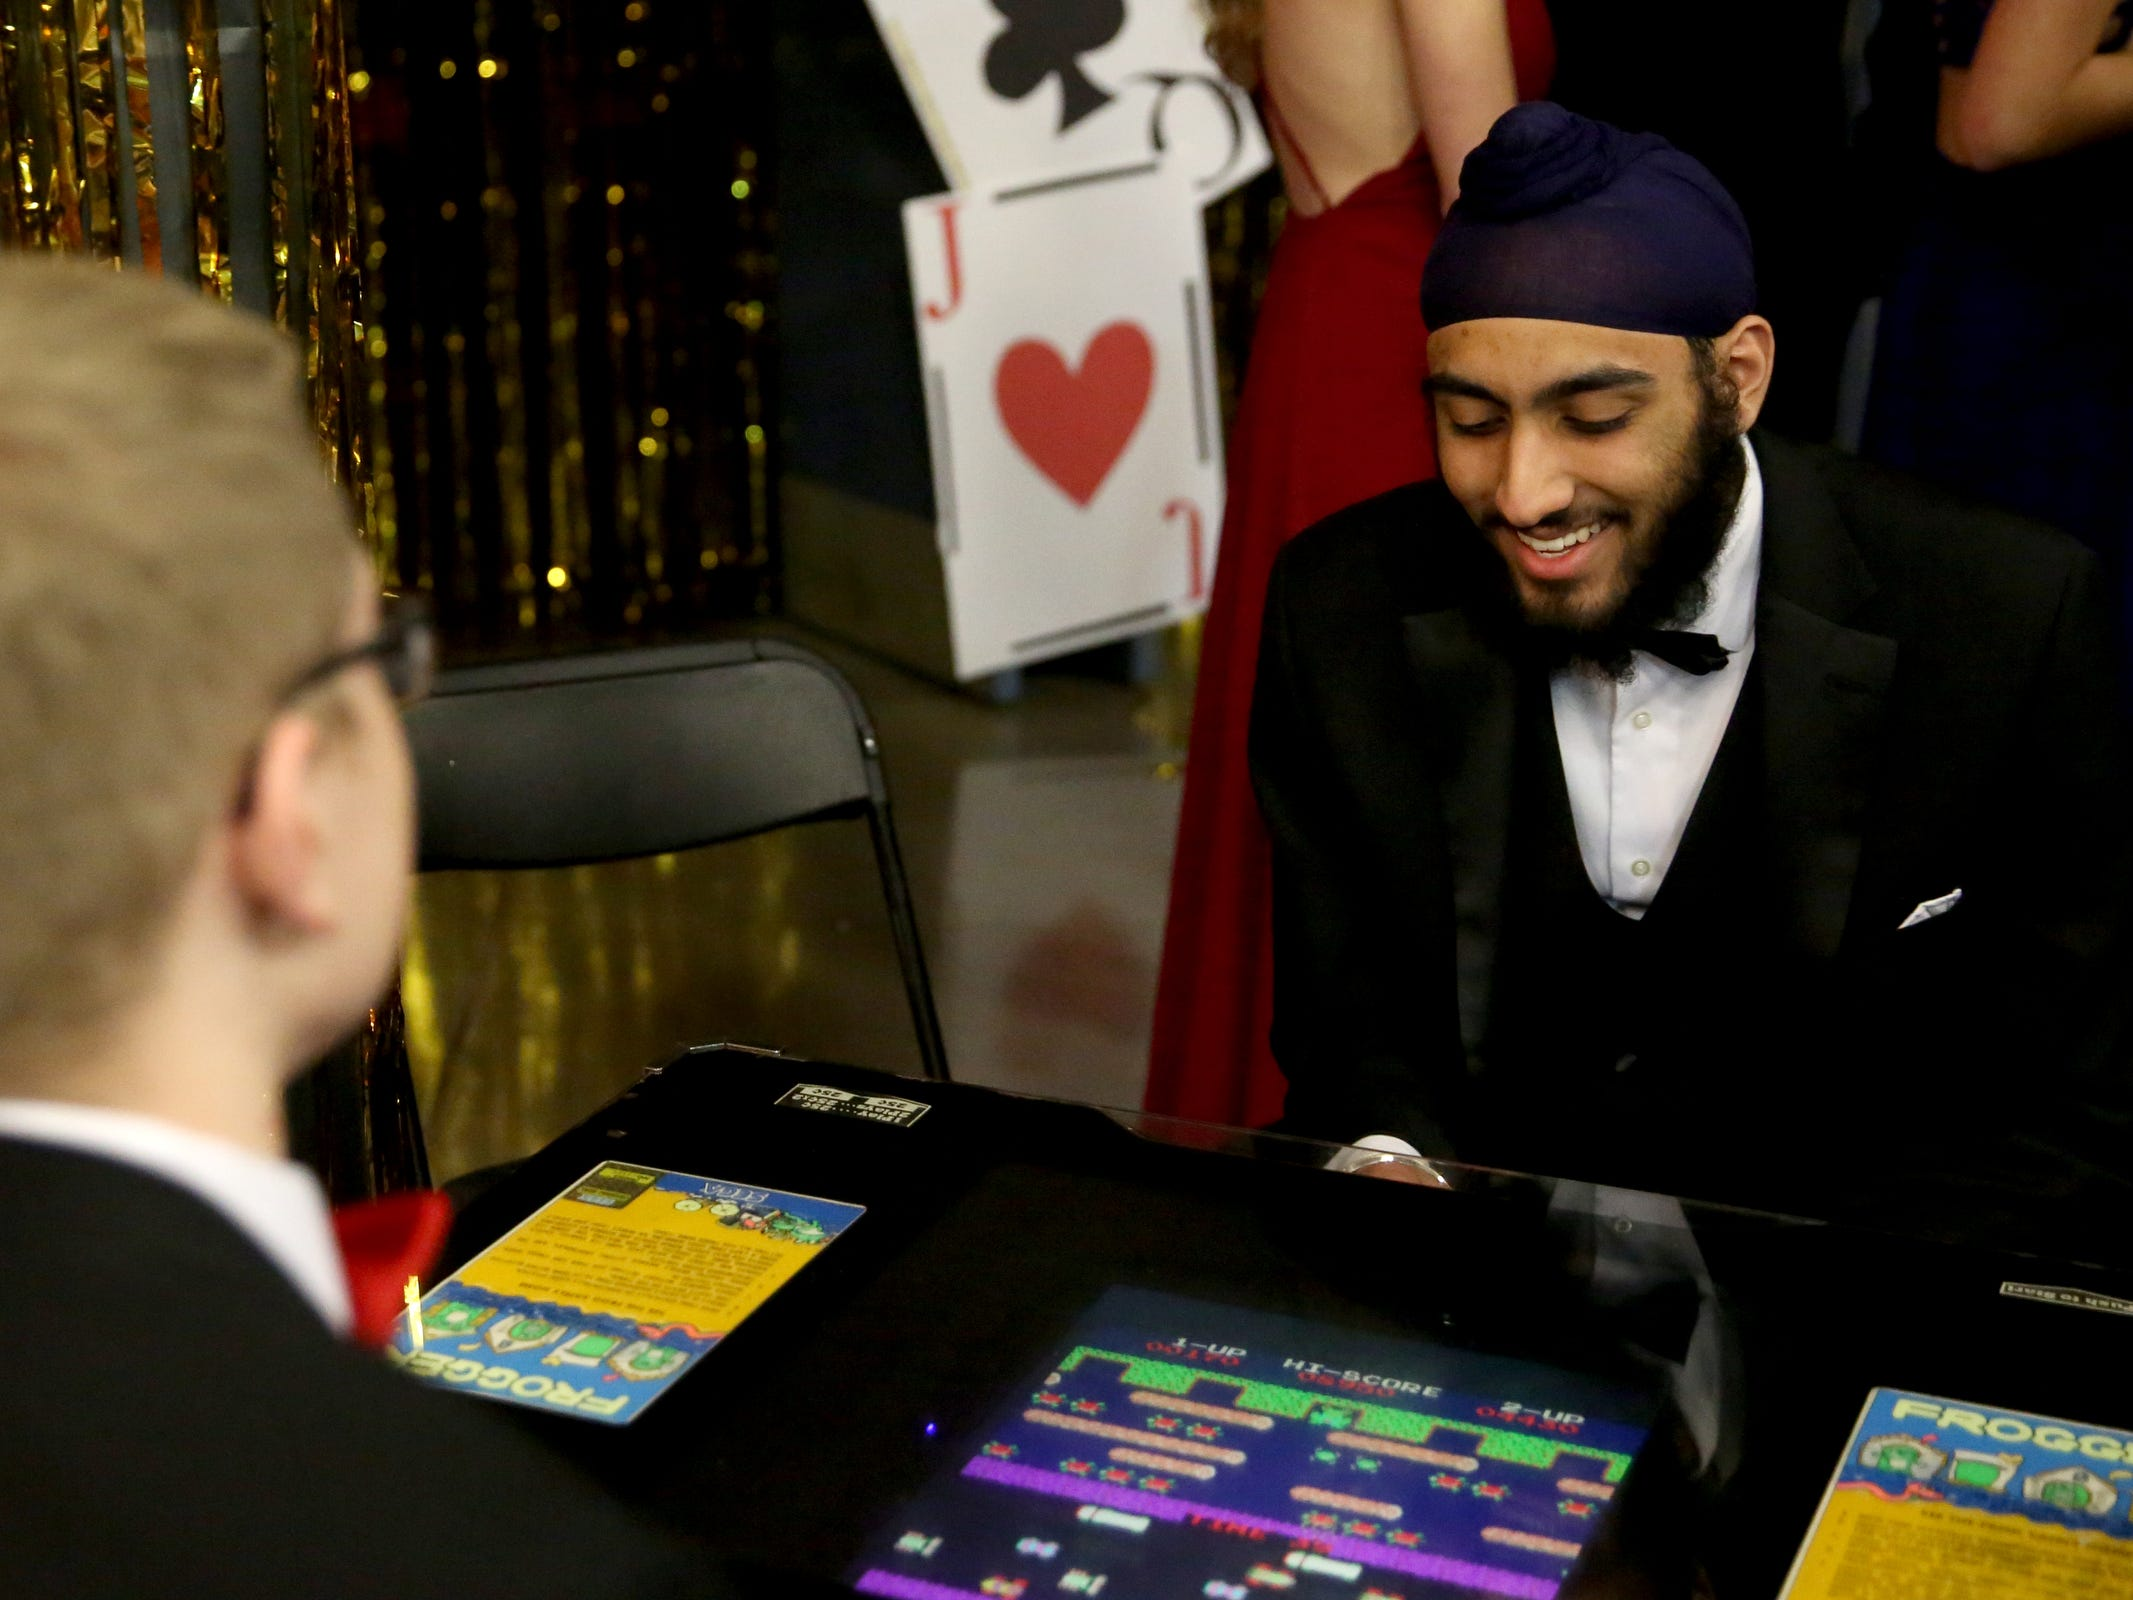 Amrit Singh, facing, and Lane Adams, both seniors, play Frogger during the West Salem High School prom at Salem Armory Auditorium on April 13, 2019.